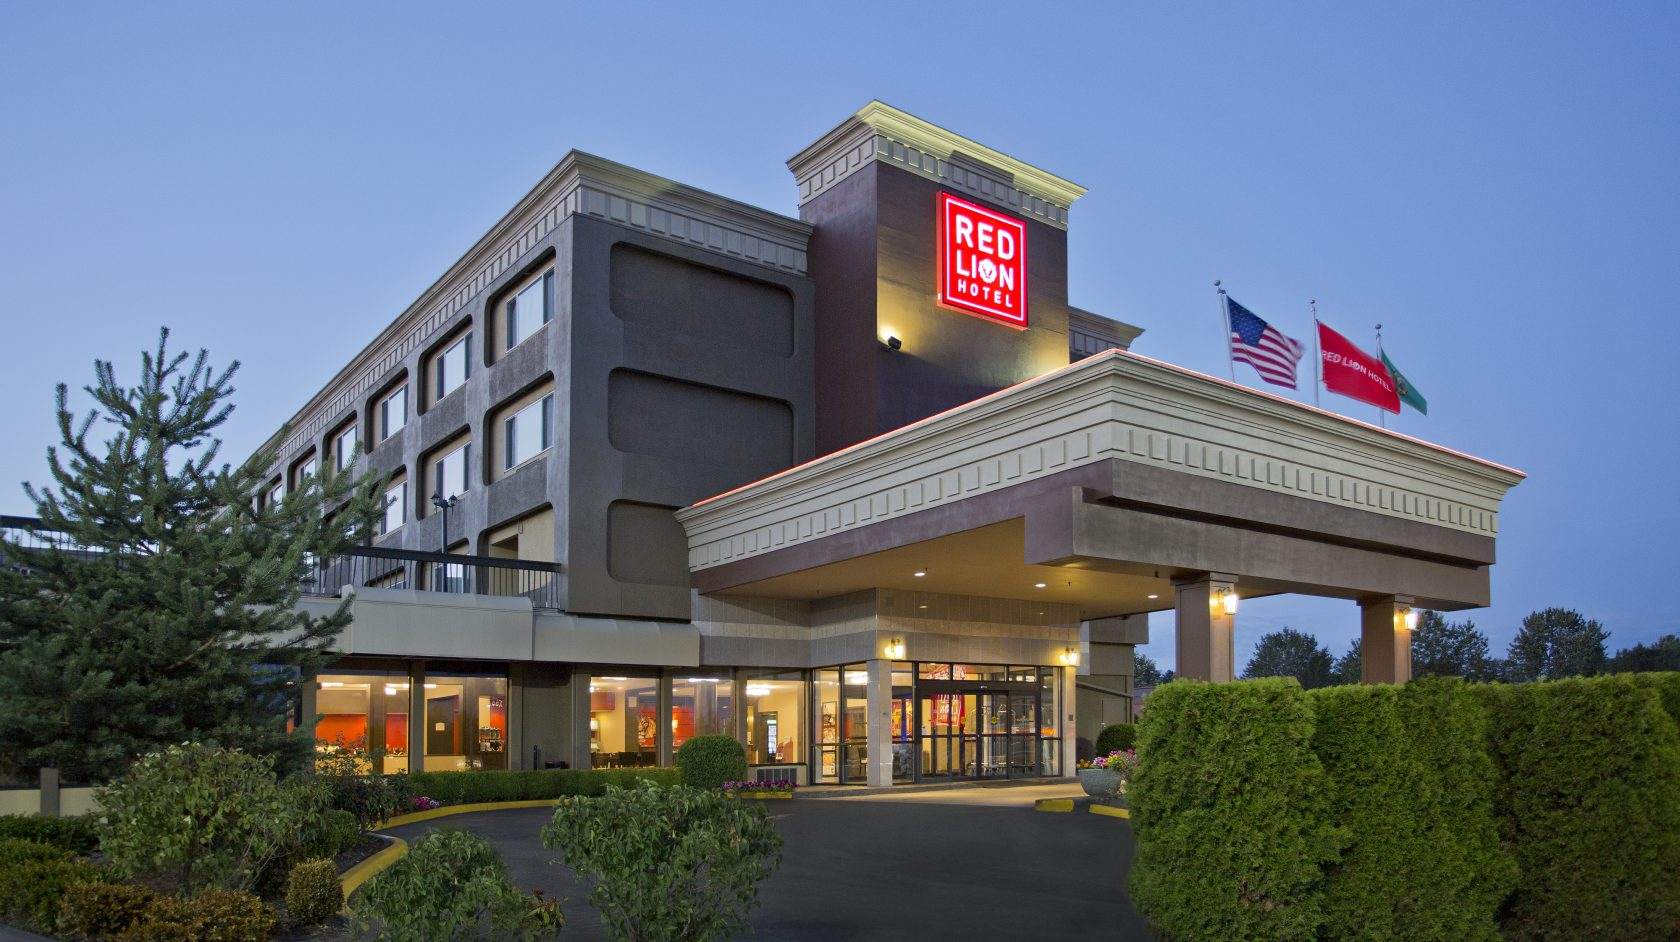 Tacoma Hotels | Red Lion Hotel Tacoma | Hotels In Tacoma